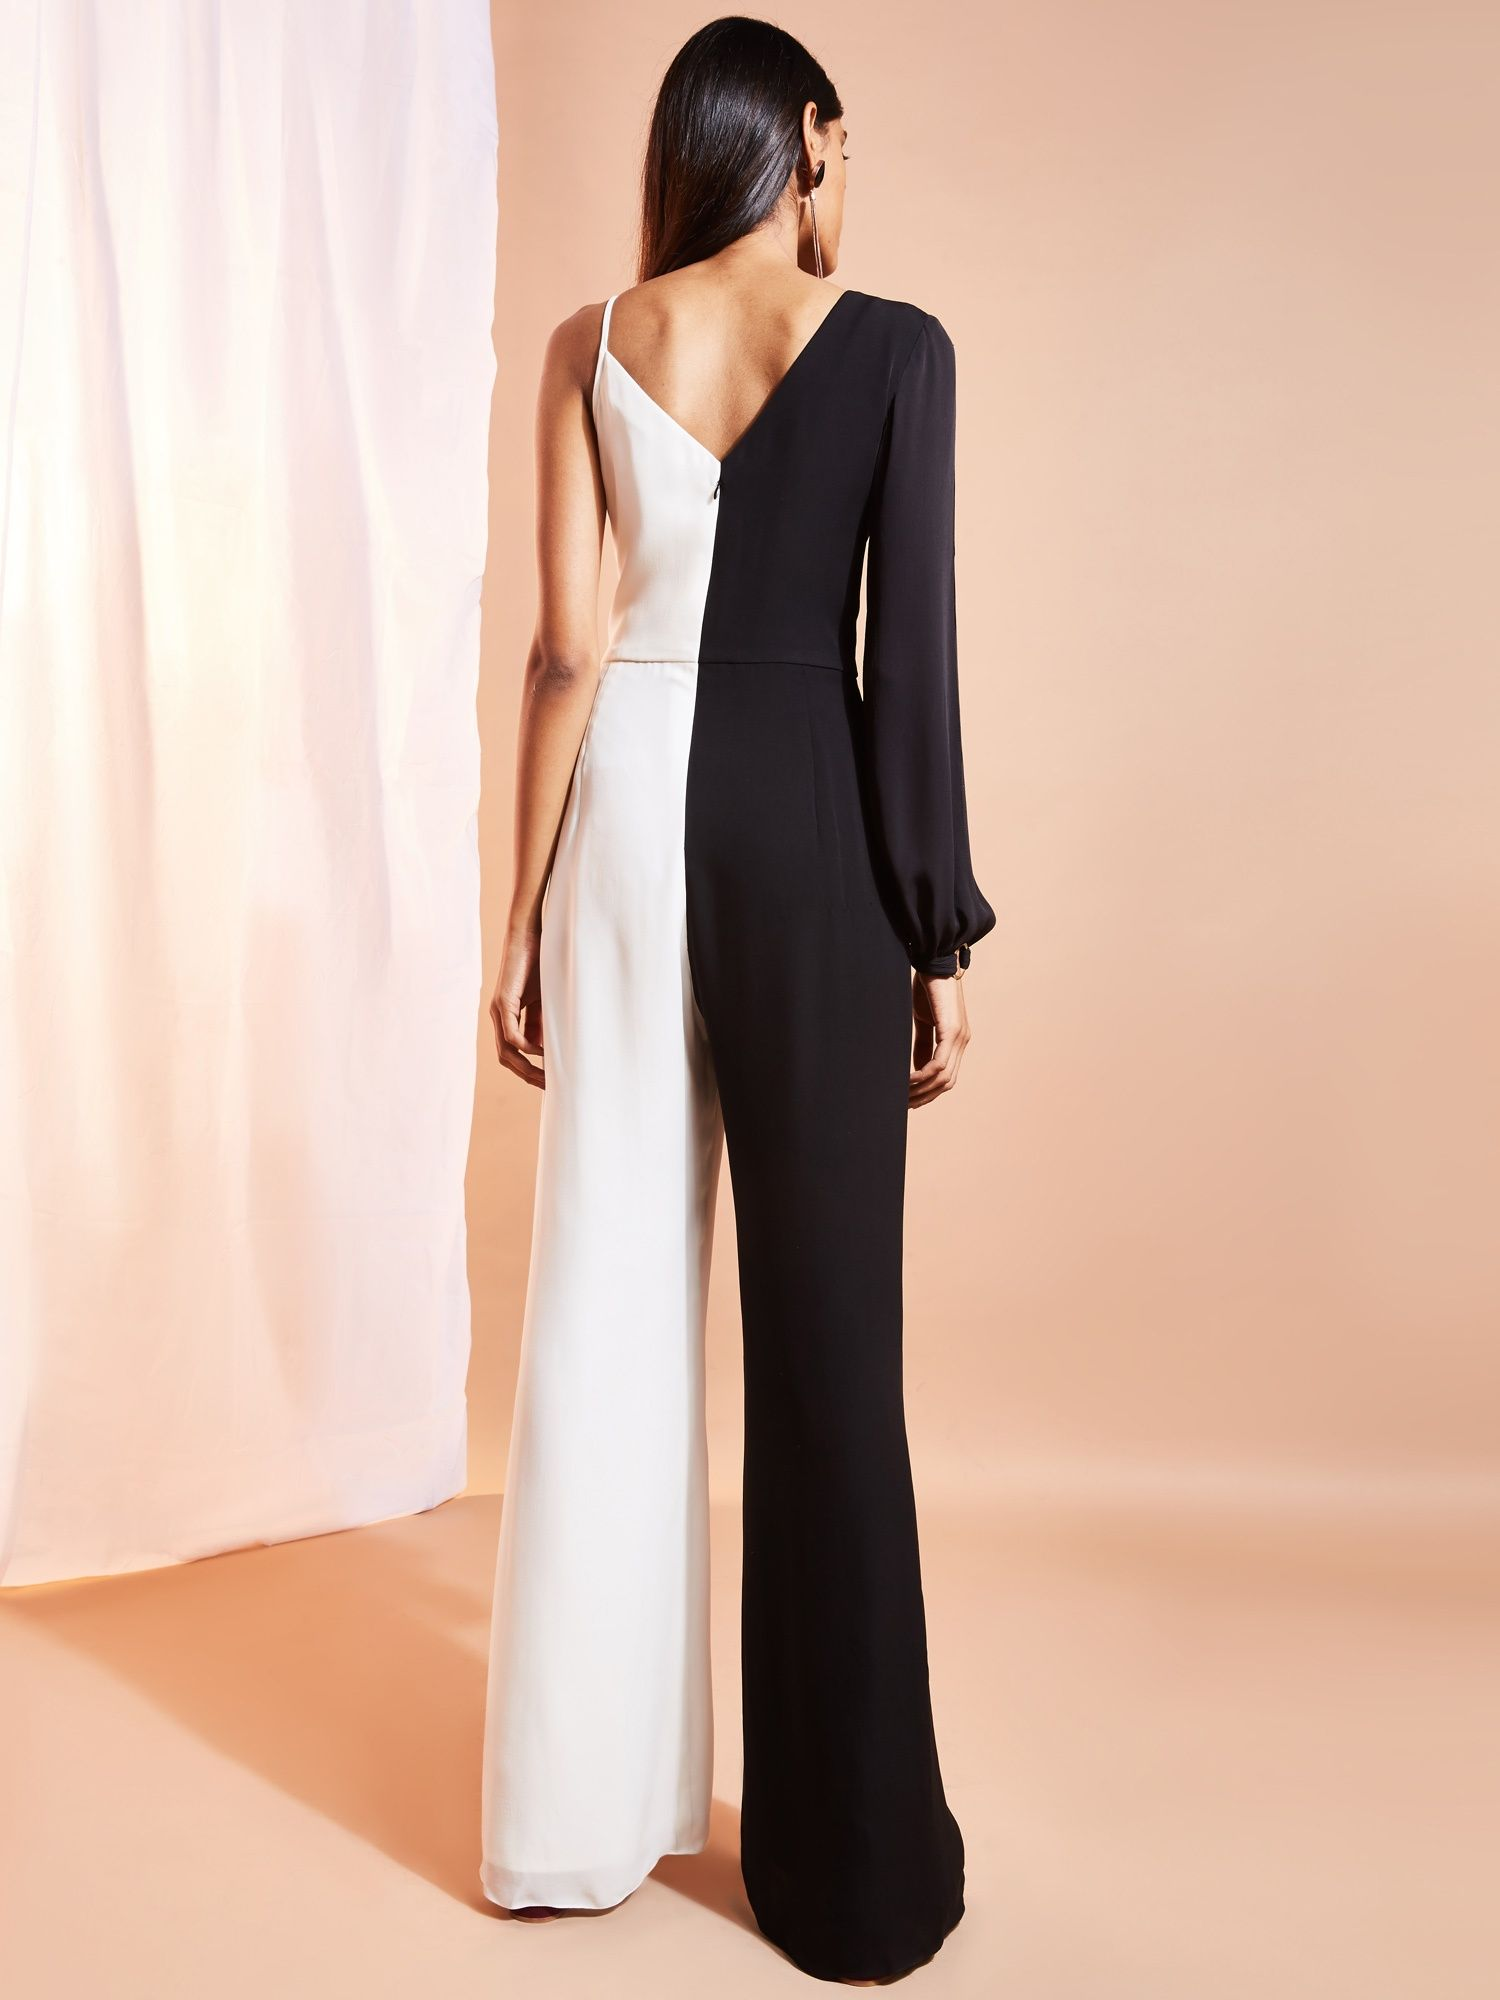 6f5f09ba59b Ritika Jump-Suits   Buy Ritika Black And White Color Block Jumpsuit With  Sleeve On One Side Online